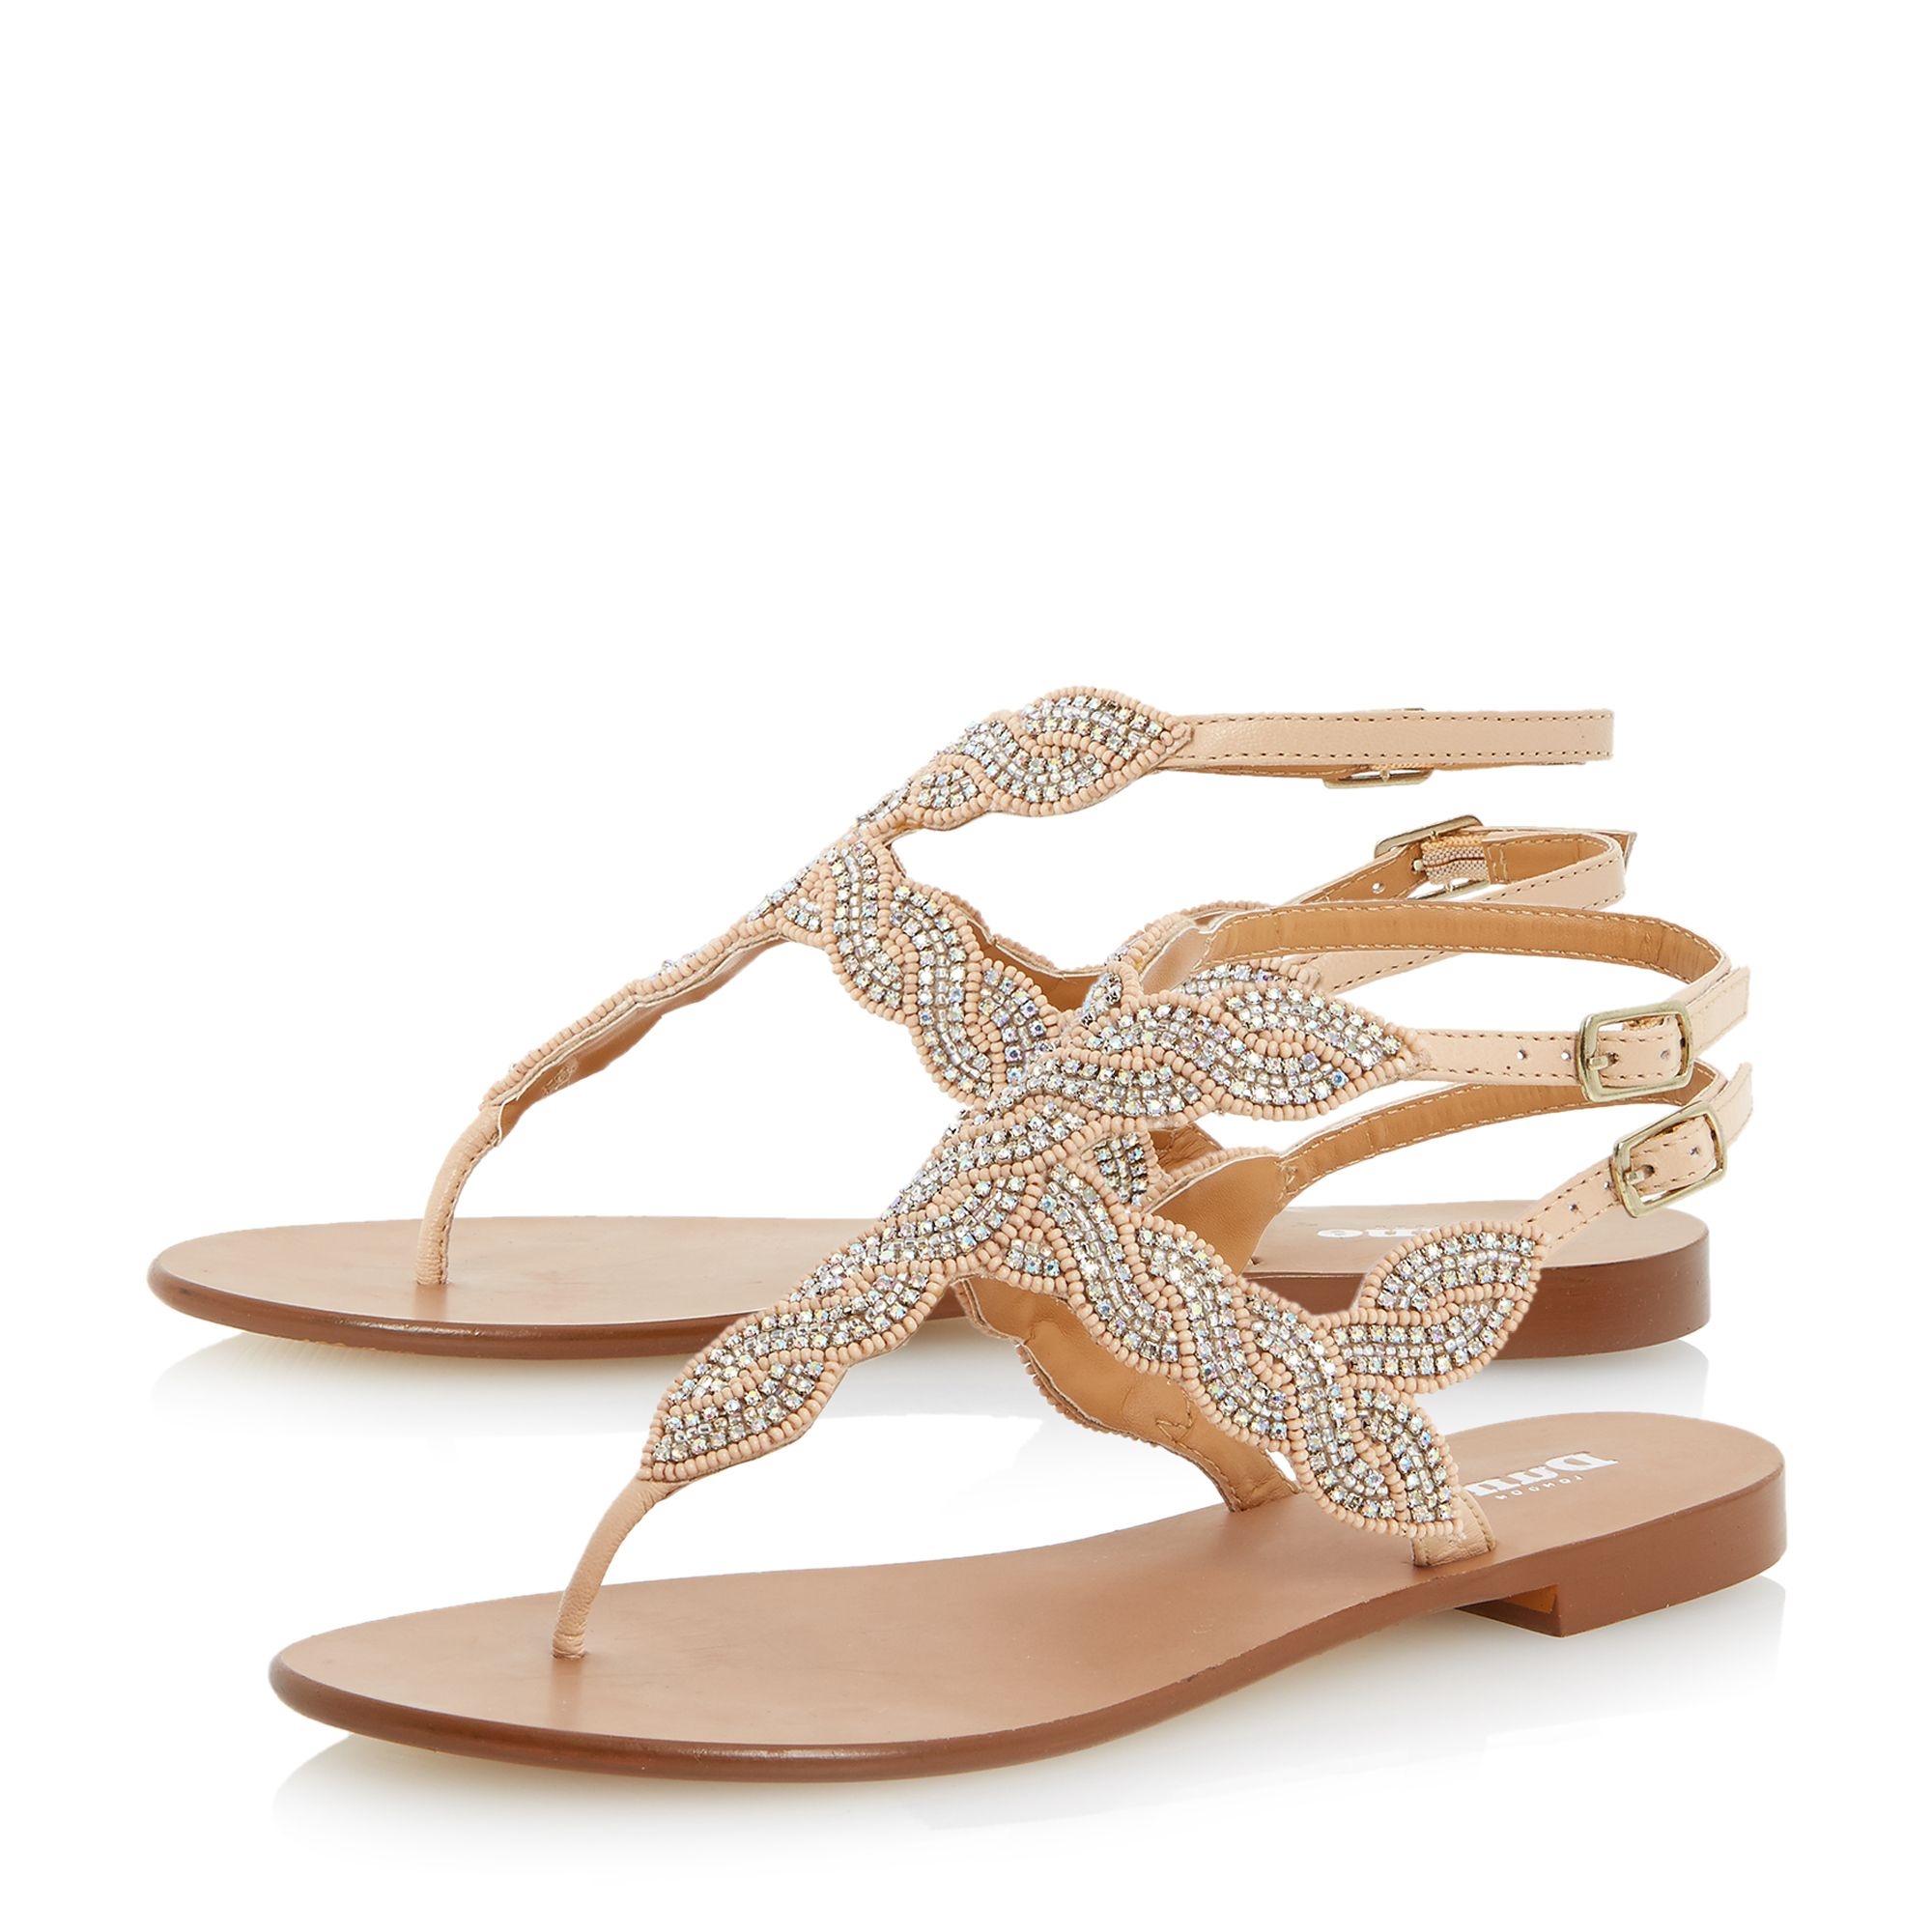 Dune Karper Leather Beaded Toe Post Sandals In Natural Lyst